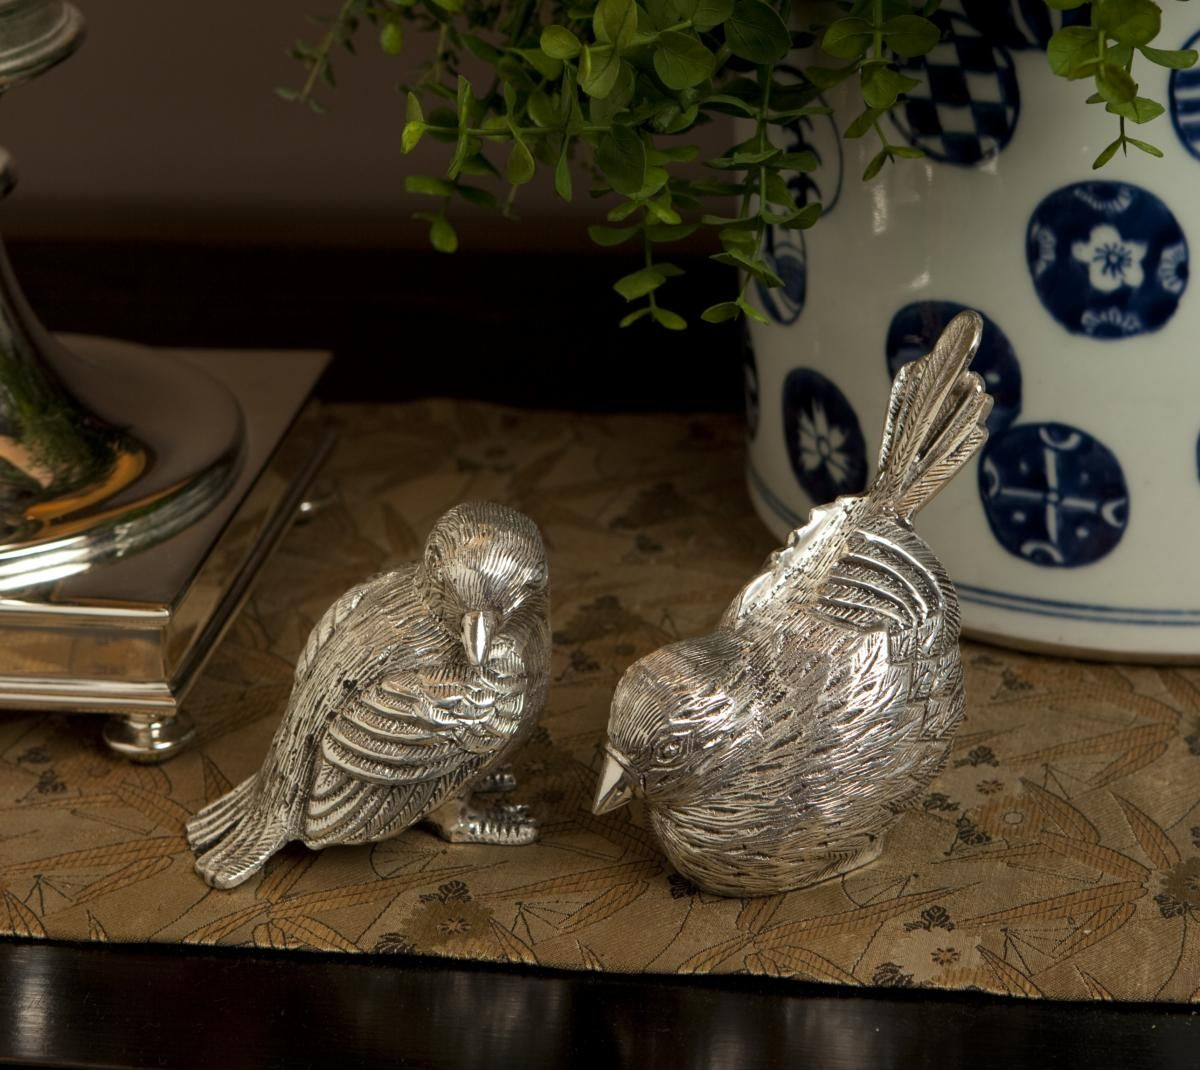 Feng shui for relationships placing objects in pairs - Objetos feng shui ...